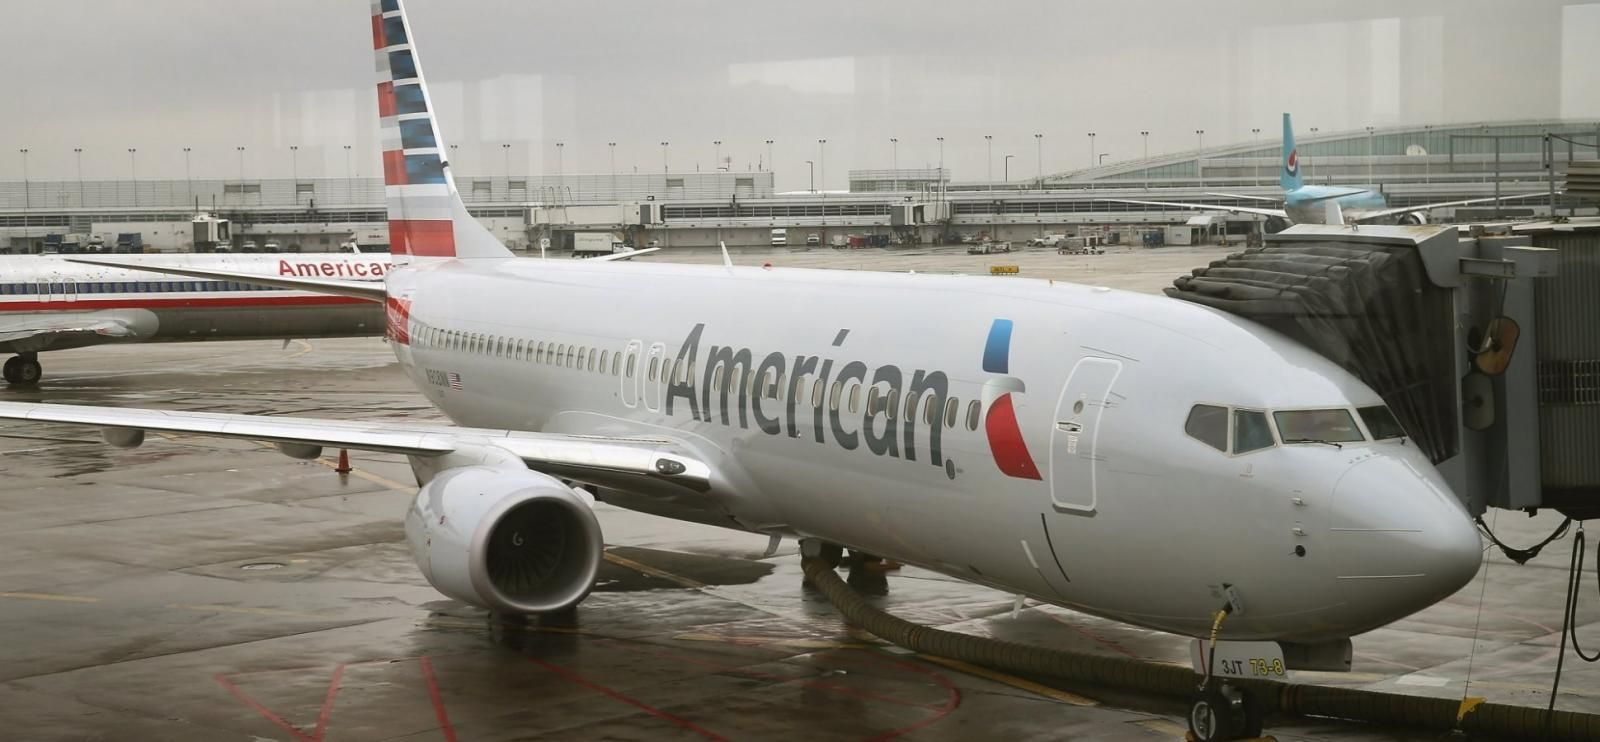 an-airplane-of-american-airlines